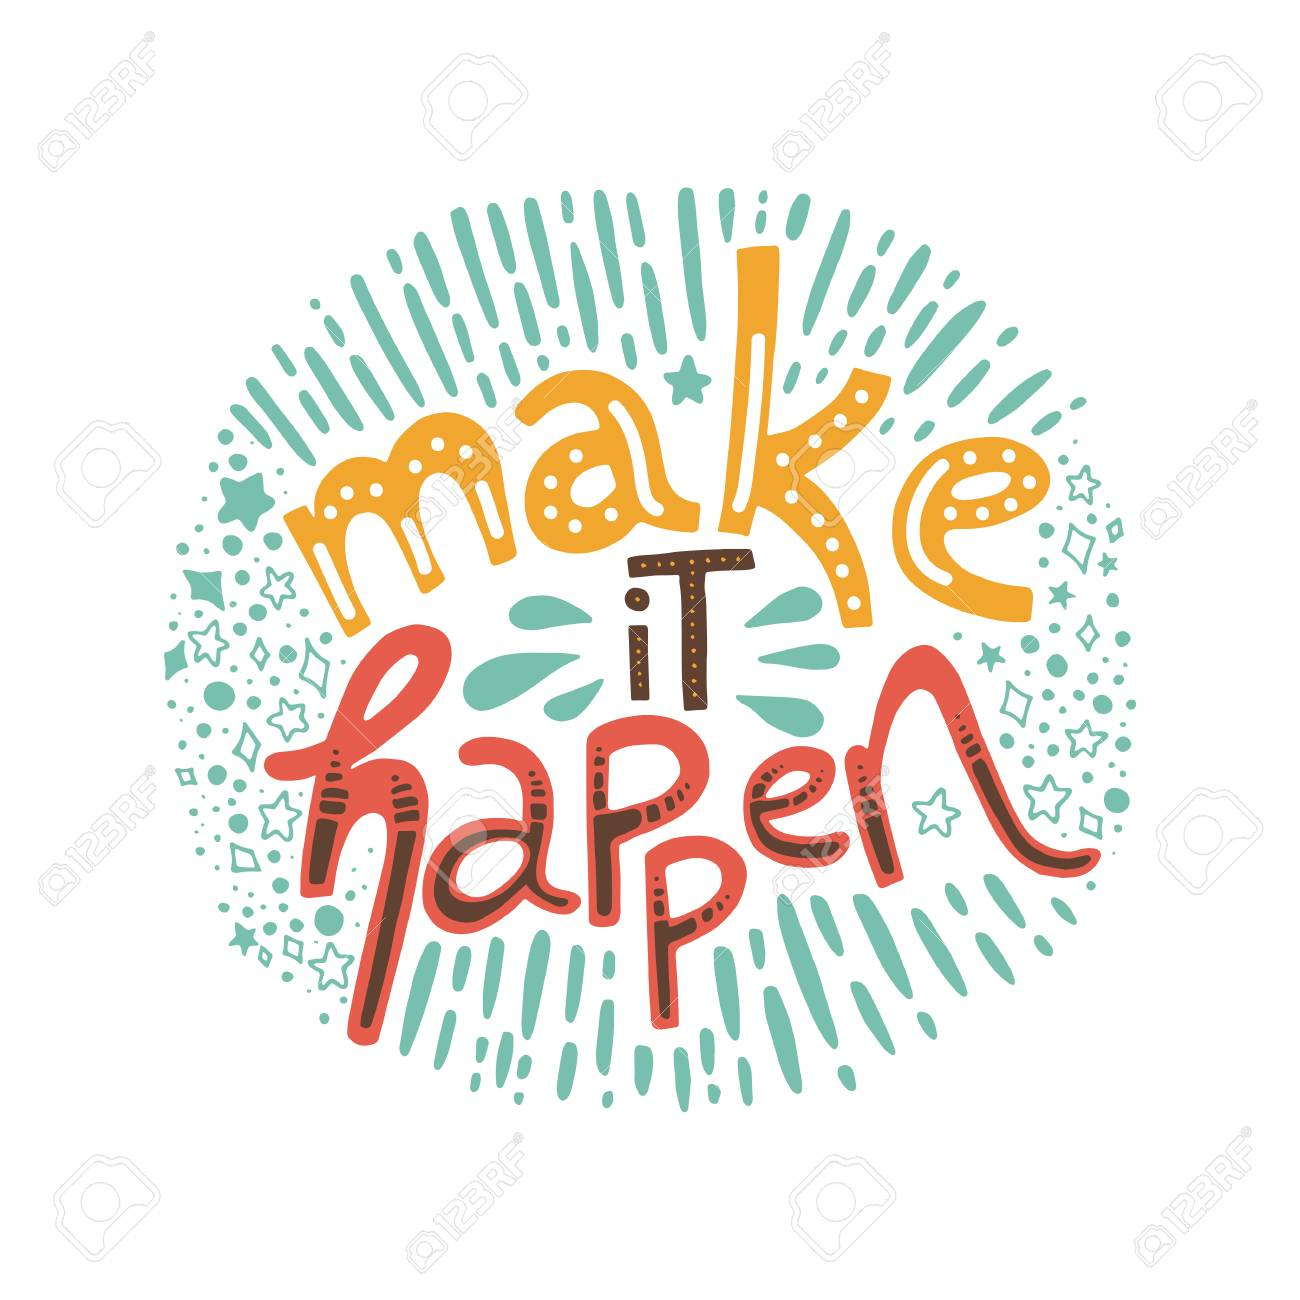 Make It Happen >> Make It Happen Hand Drawn Lettering